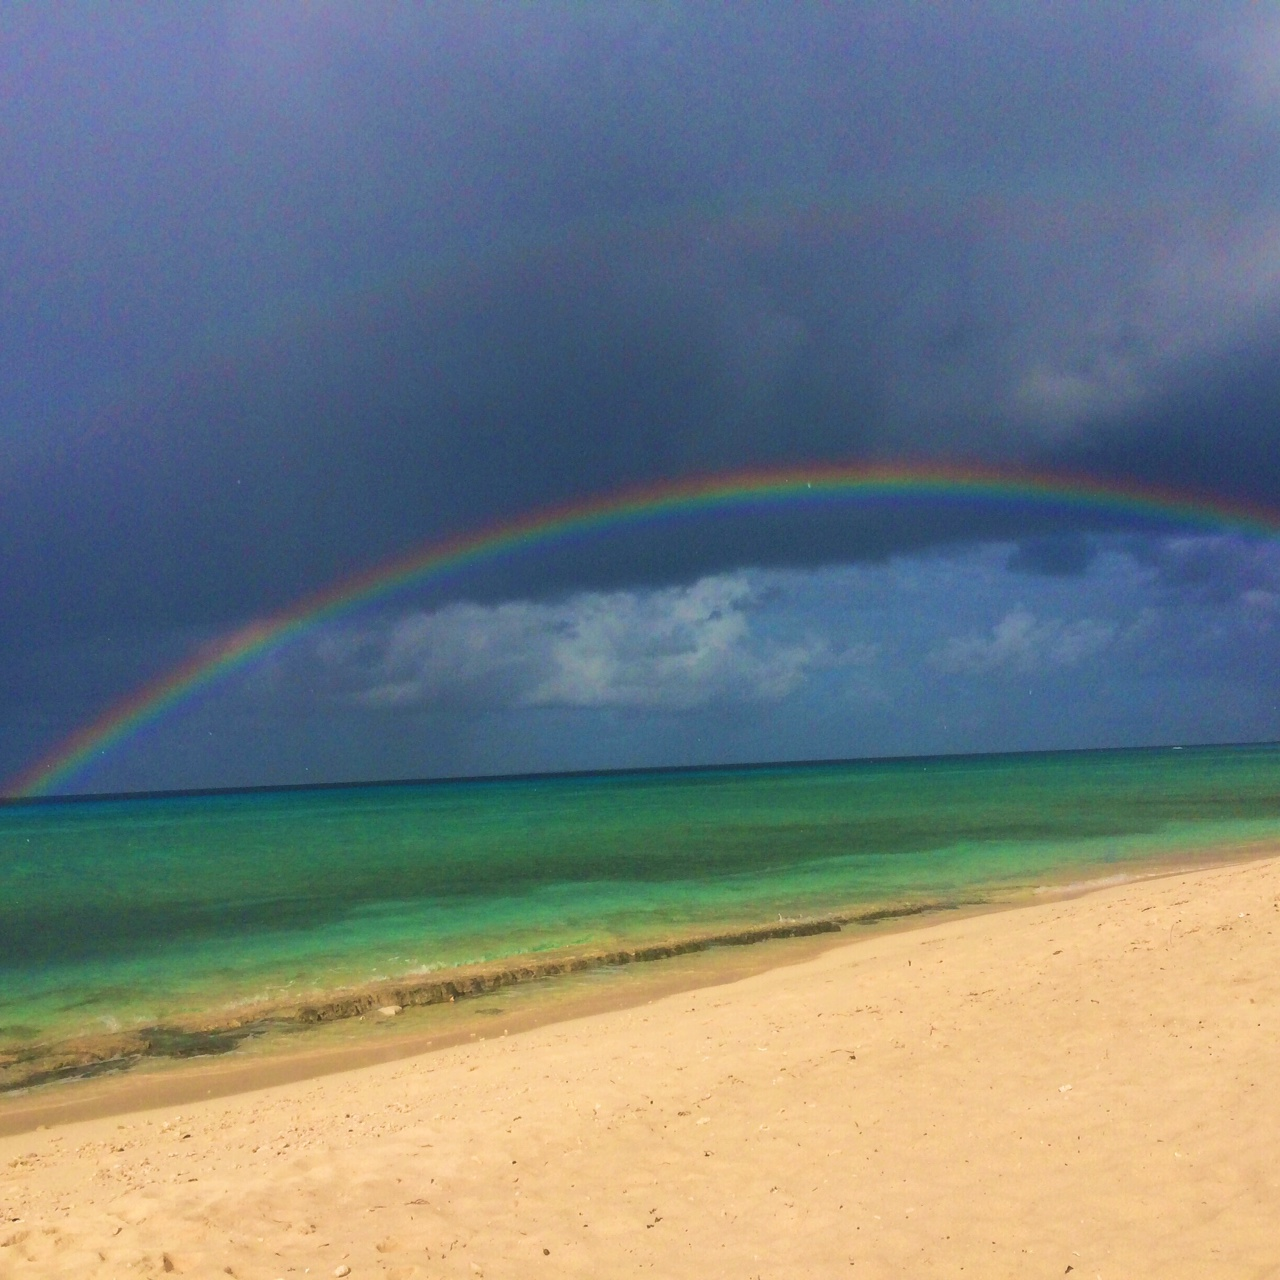 A rainbow in Turks and Caicos